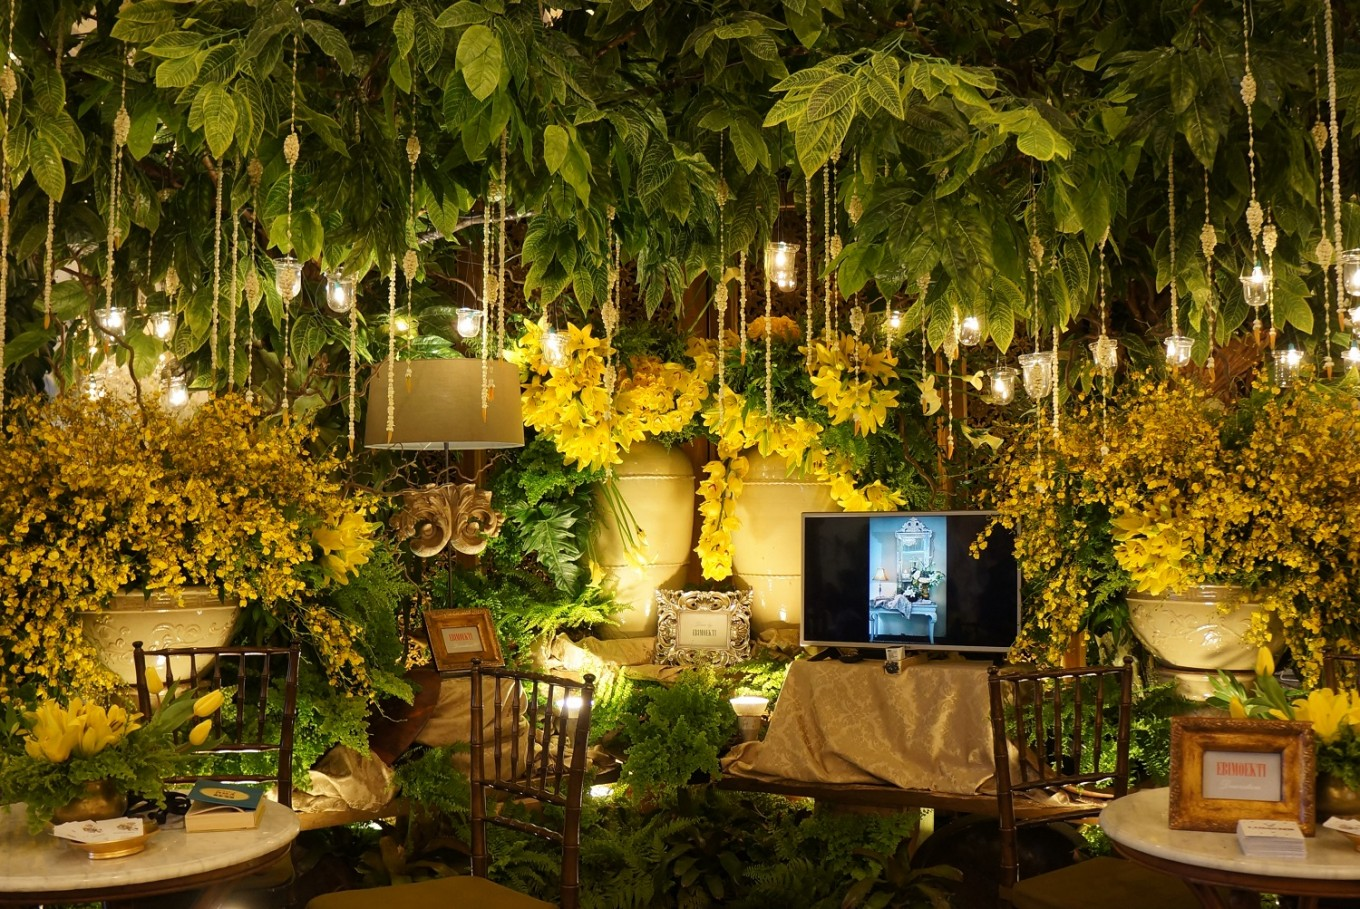 2017 bridestory fair lures visitors with minimalist and effortless 2017 bridestory fair lures visitors with minimalist and effortless wedding themes junglespirit Gallery